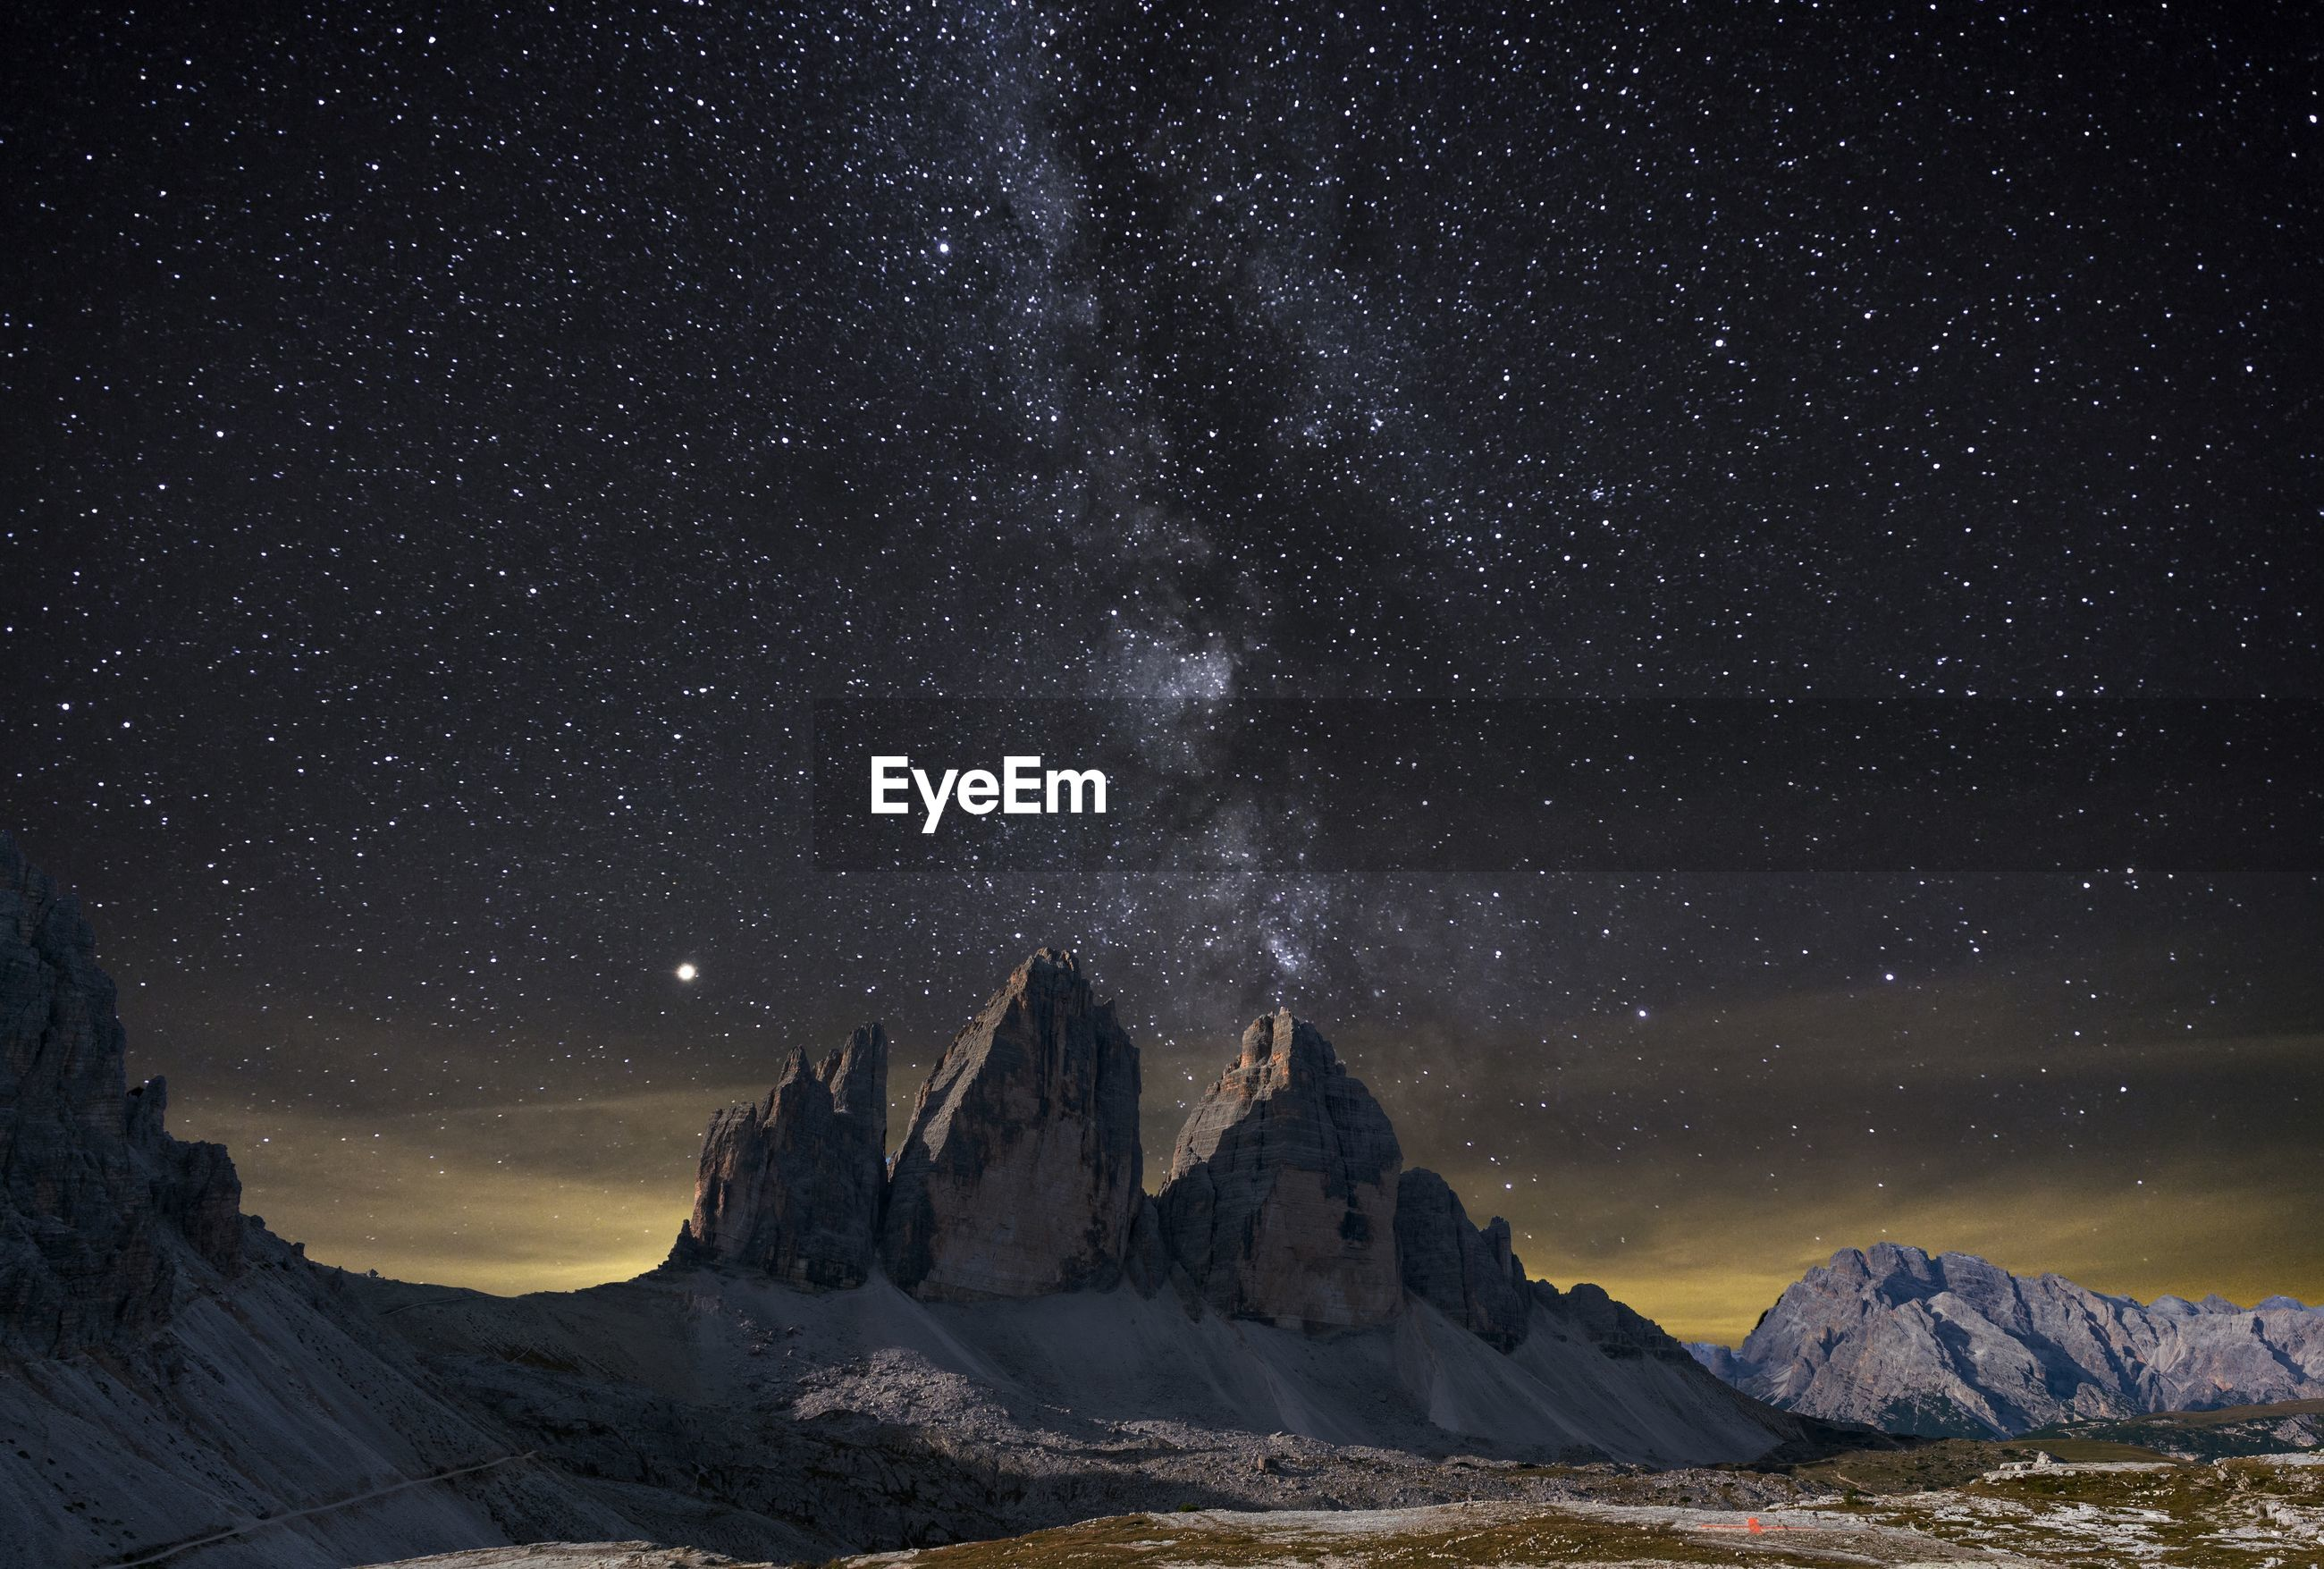 Scenic view of rocky mountains against star field